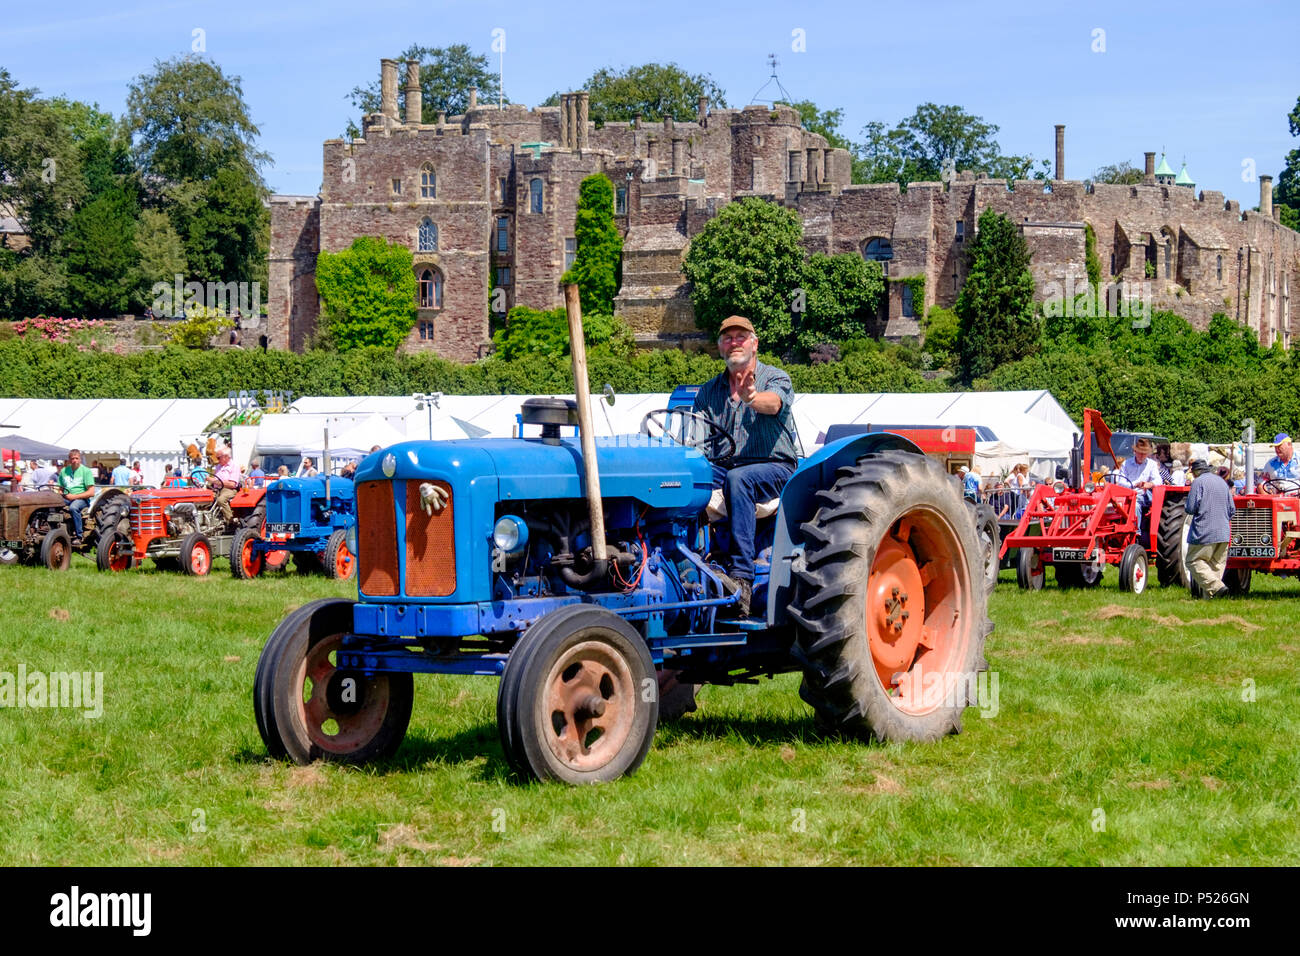 gloucestershire-uk-24th-june-2018-the-annual-berkeley-show-is-held-in-the-lee-of-historic-berkeley-castle-it-is-an-opportunity-for-local-country-business-to-network-local-crafts-are-displayed-farriers-hold-demonstrations-and-contests-and-tractors-are-polished-and-paraded-local-animals-were-present-as-well-as-alpacas-who-are-always-popular-mr-standfastalamy-live-news-P526GN.jpg